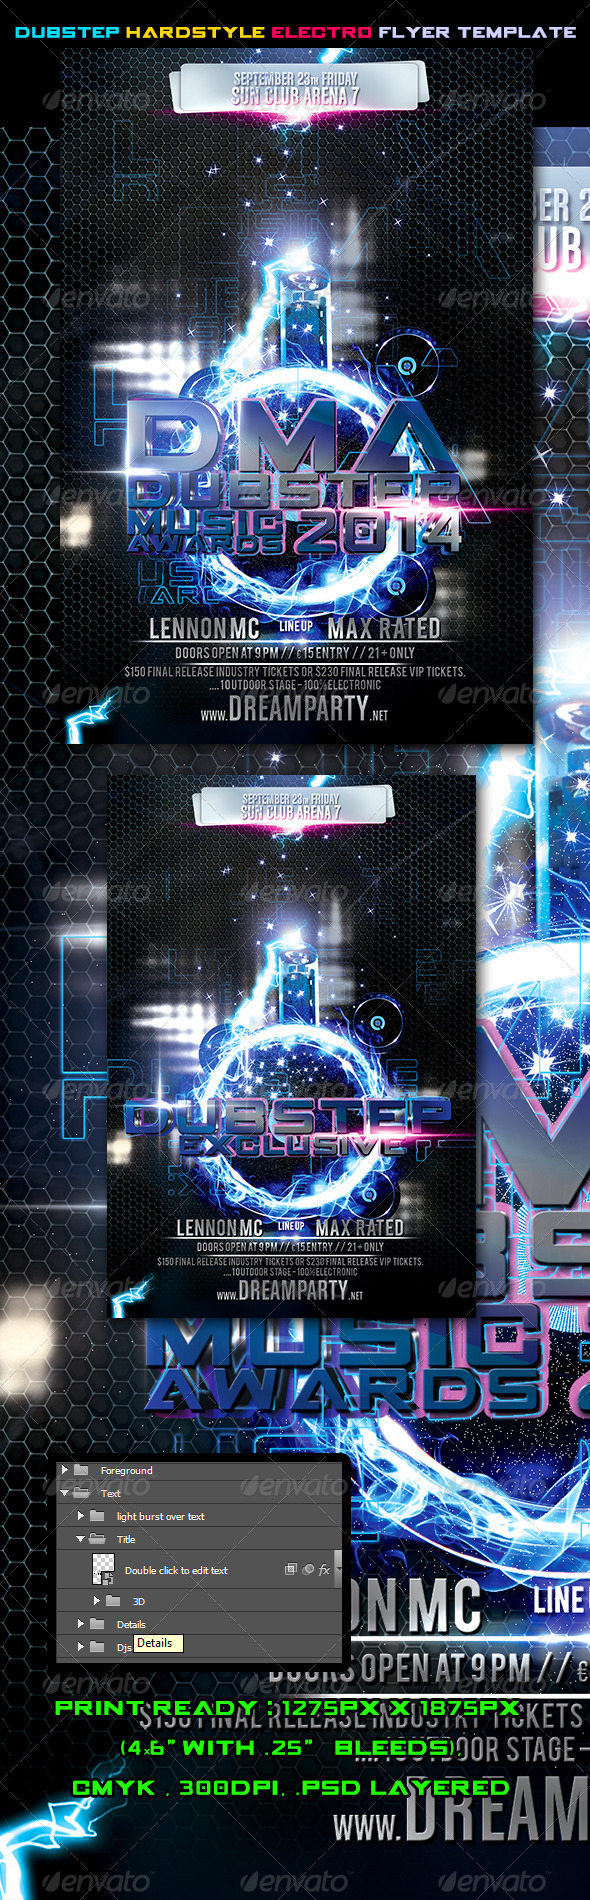 Dubstep Hardstyle Electro Flyer Template Vol.2 - Events Flyers